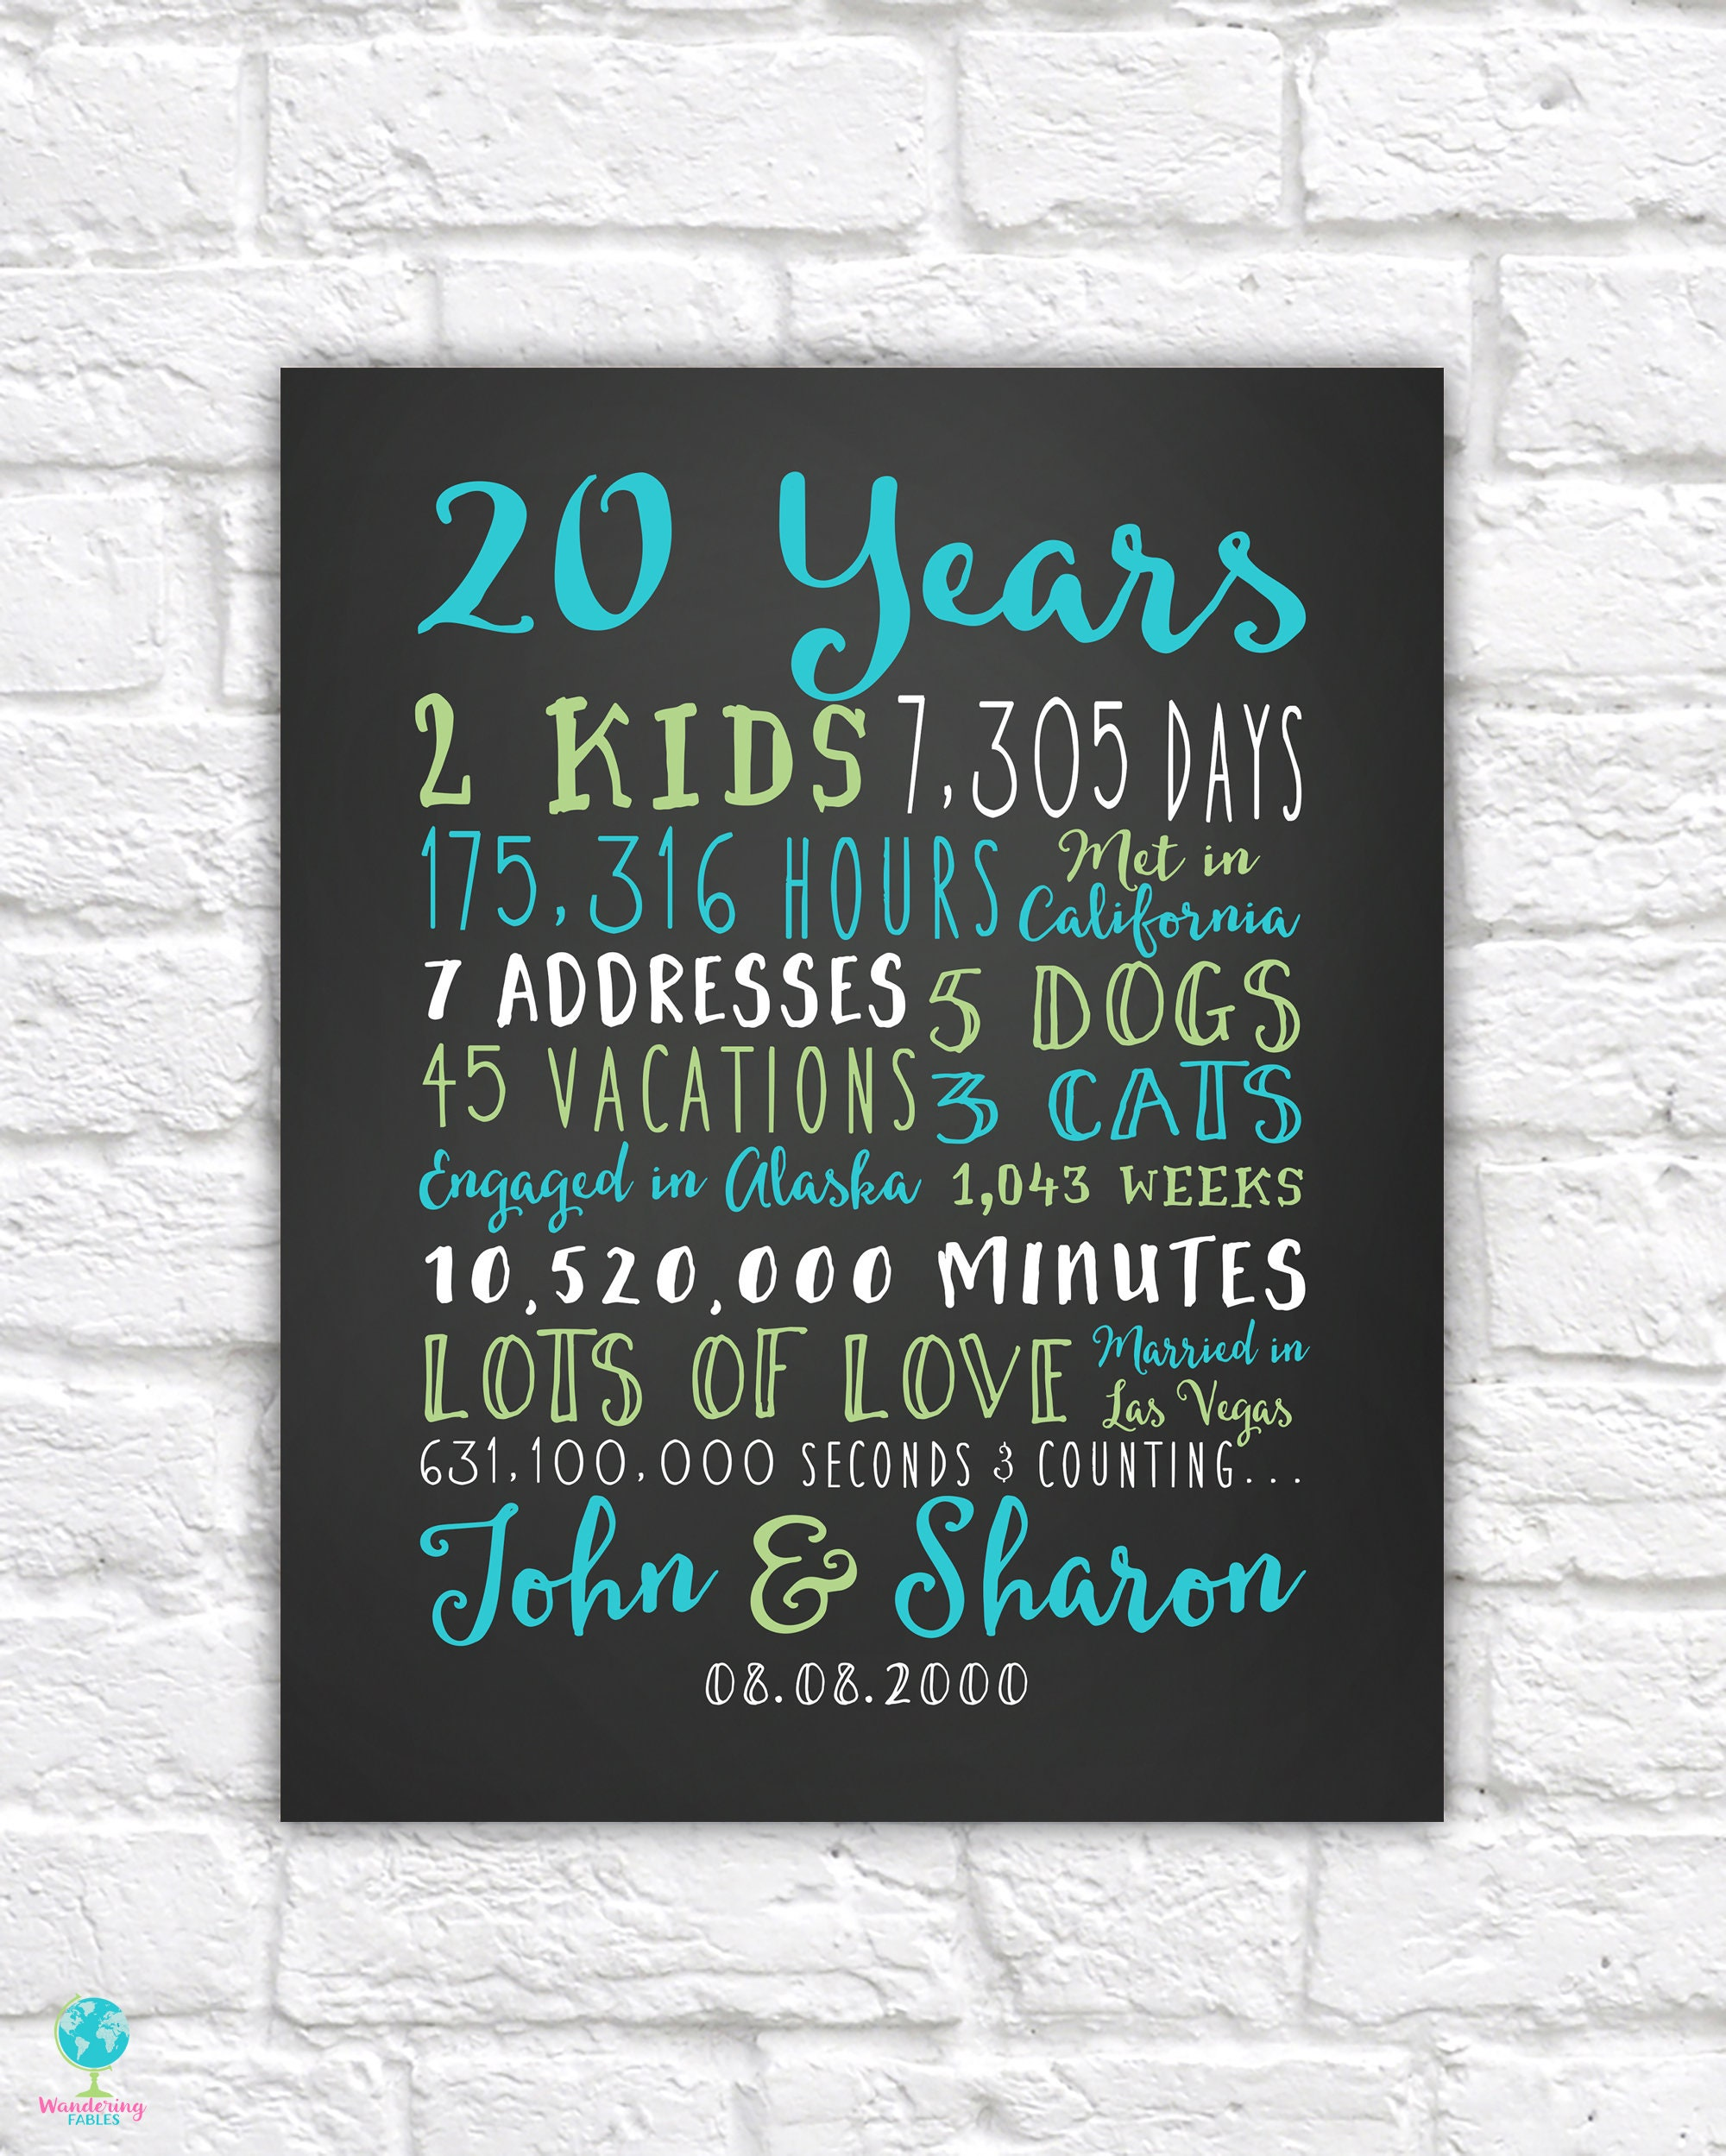 20 Year Wedding Anniversary Gift For Wife: 20th Wedding Anniversary Art, Personalized With Names And